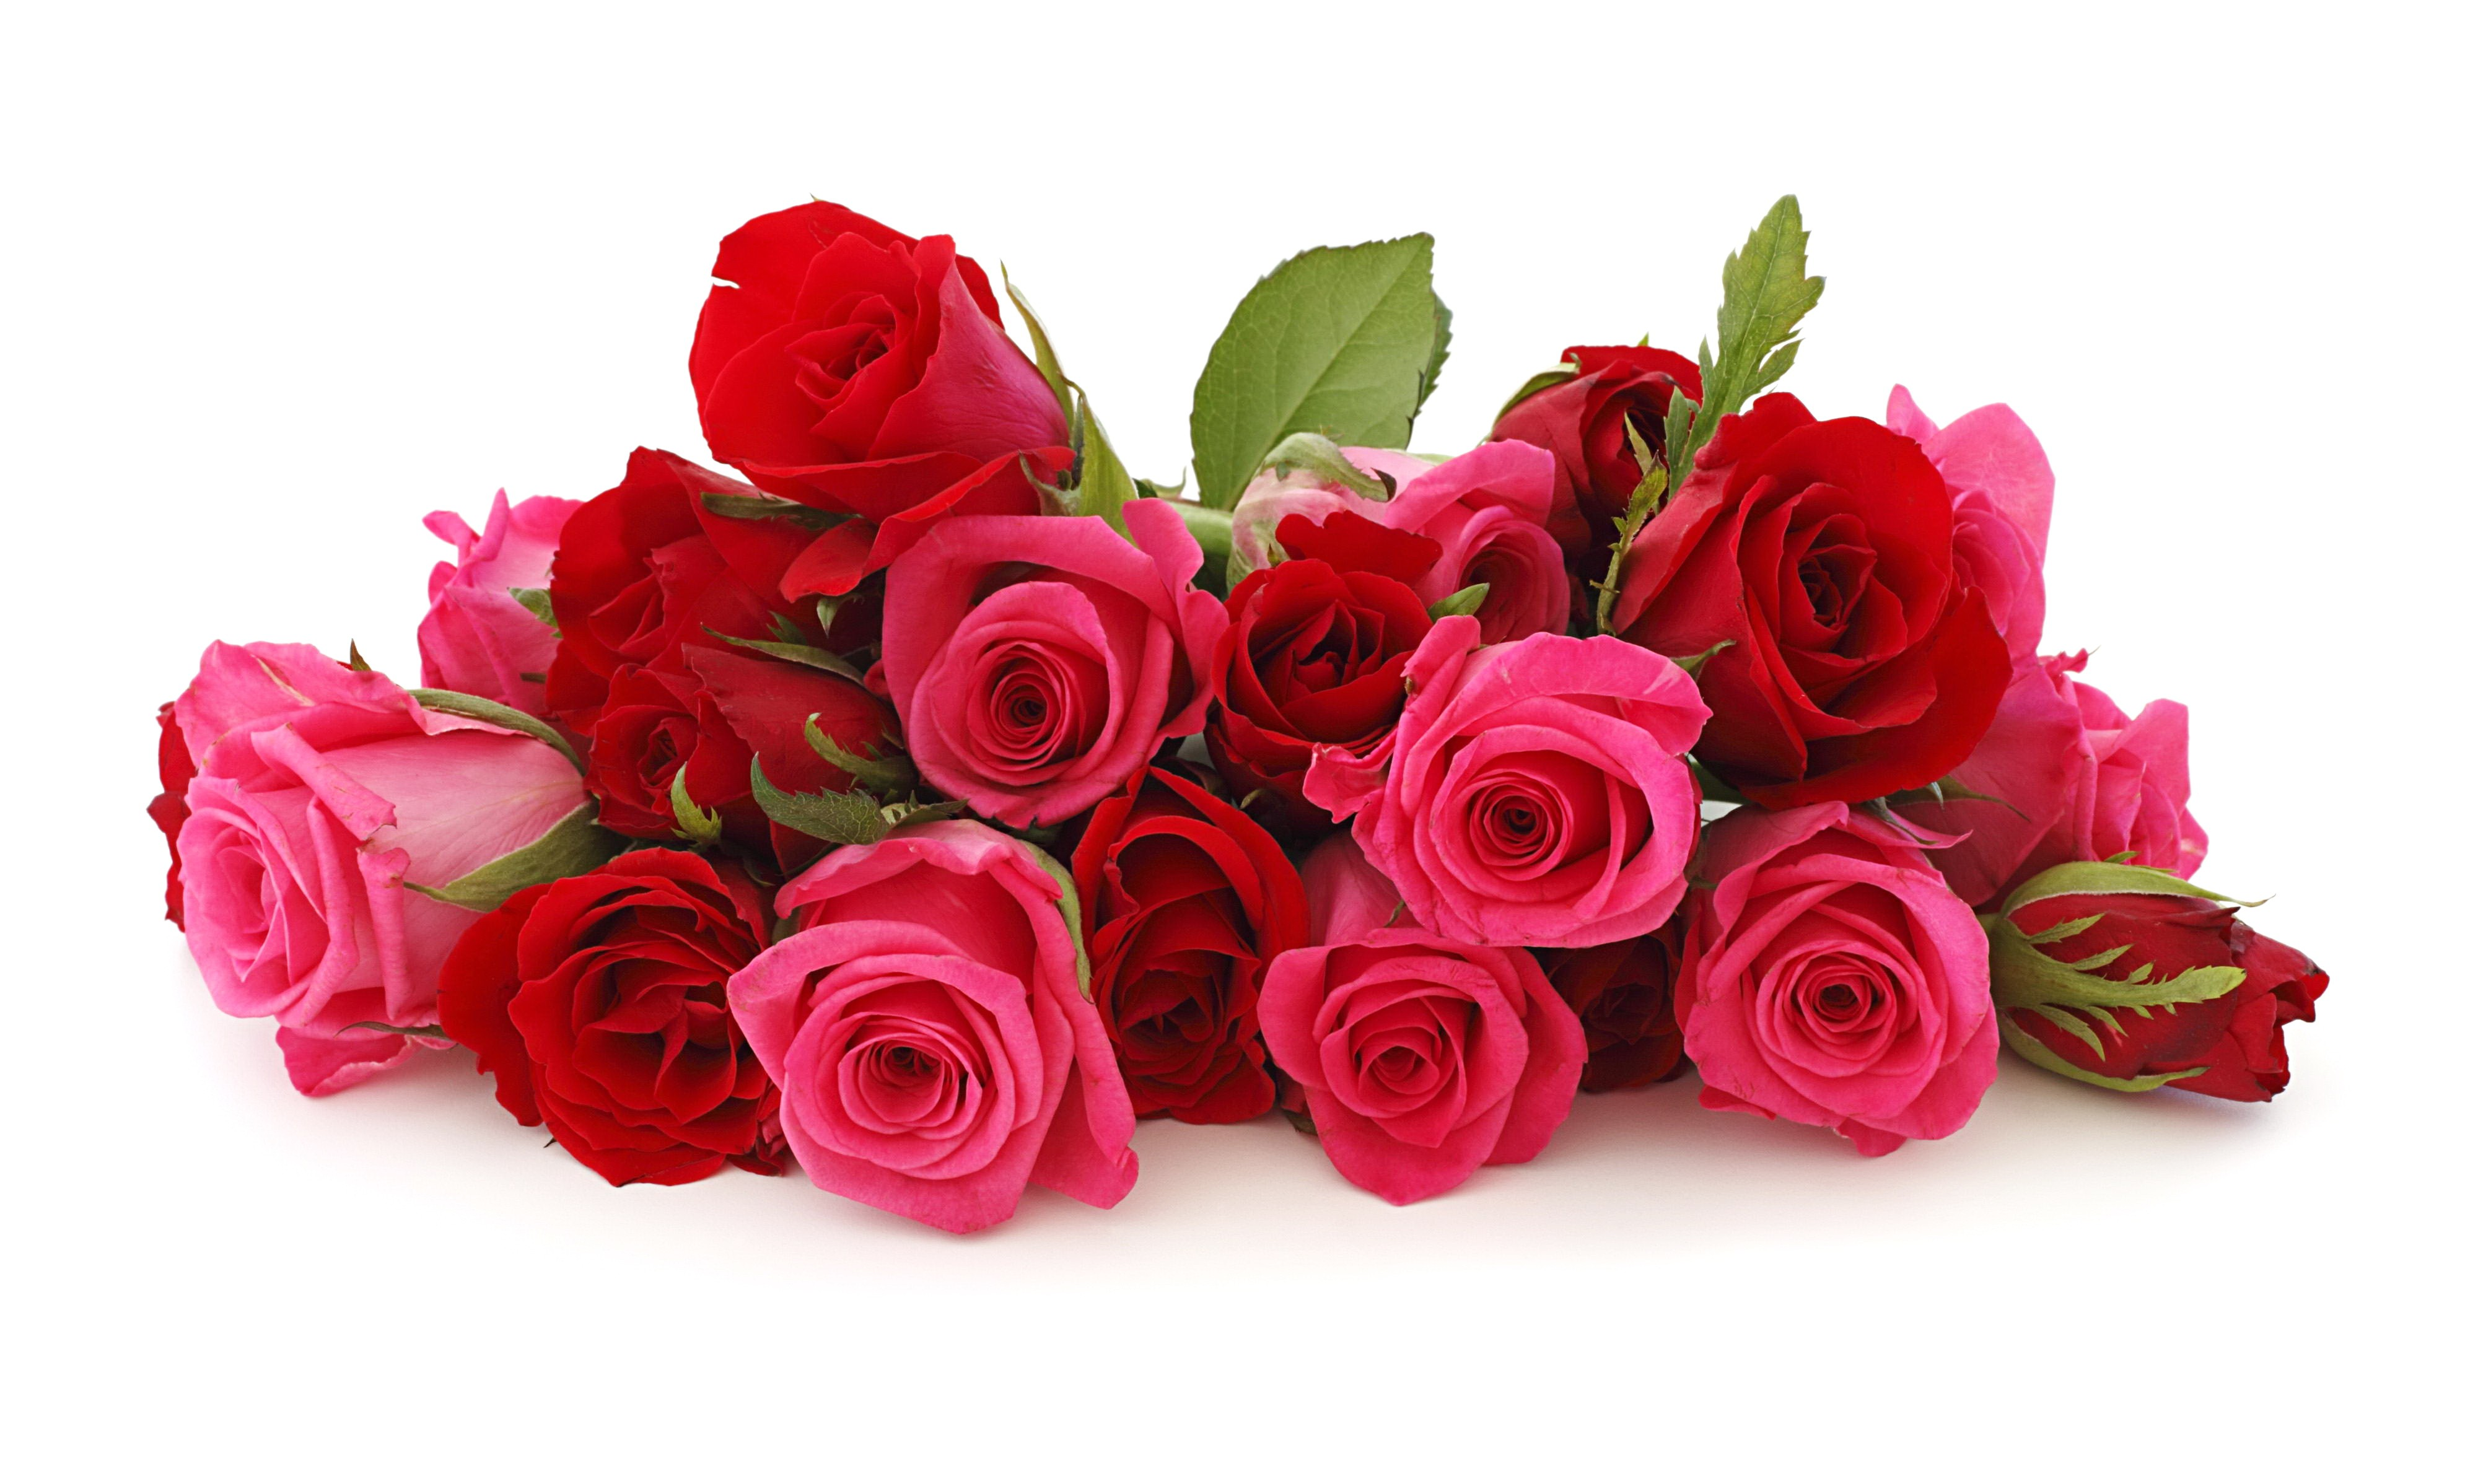 Hd wallpaper red rose -  Red Pink Nie Red Roses Free Hd Wallpapers